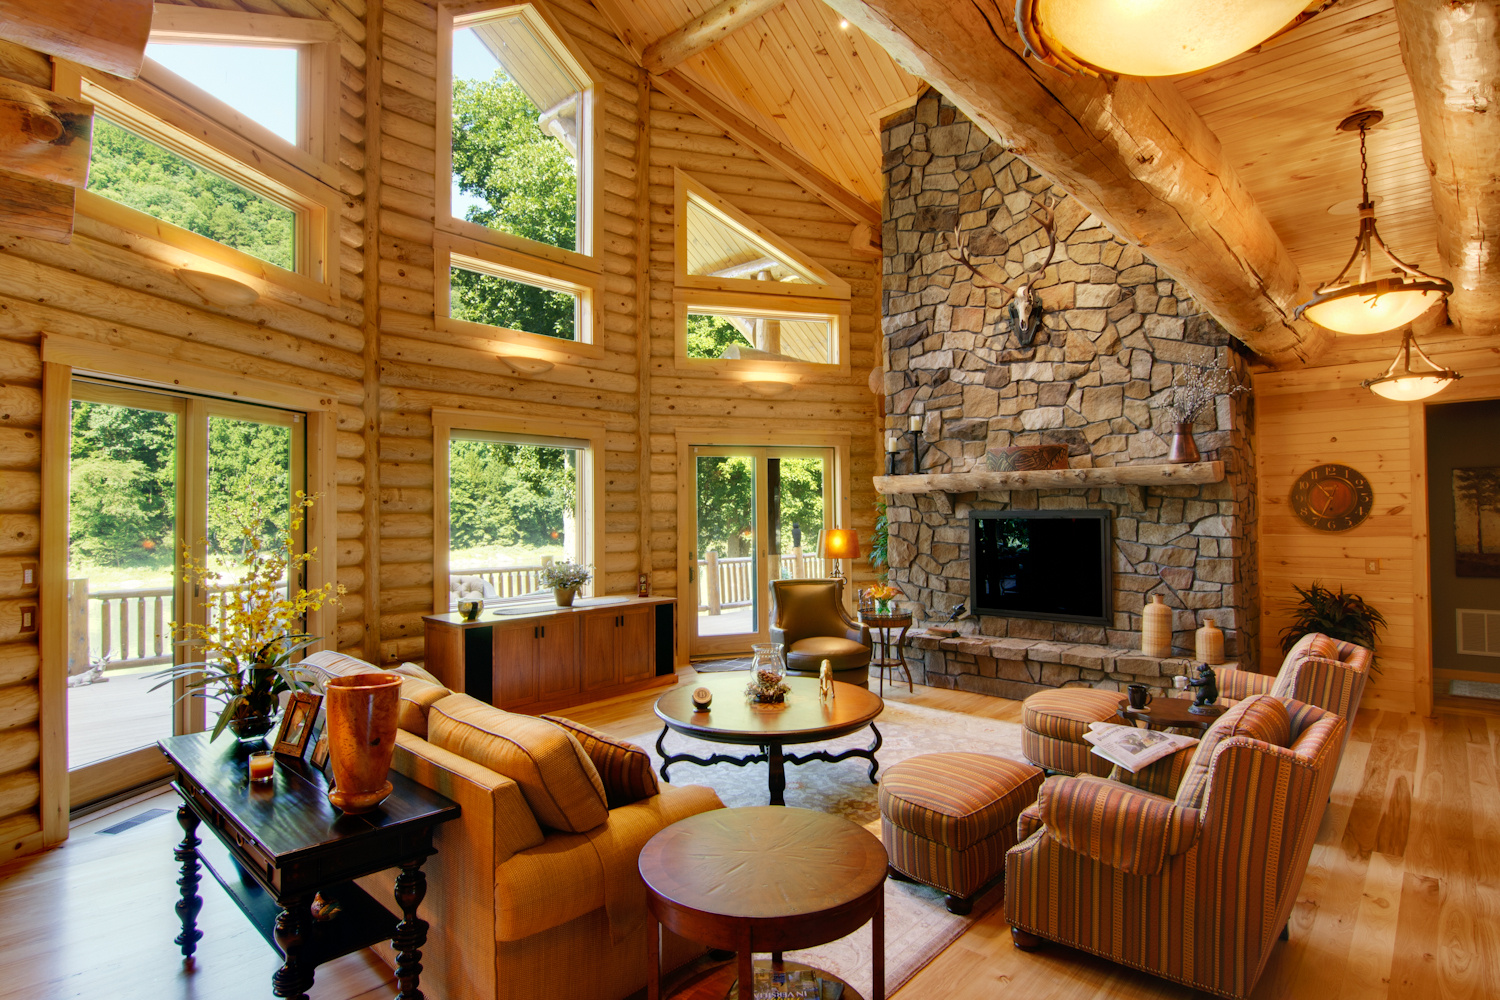 Log Home Interiors Alluring Log Home Interiorslog Cabin Interior Https Www Quick Garden Co . Design Ideas